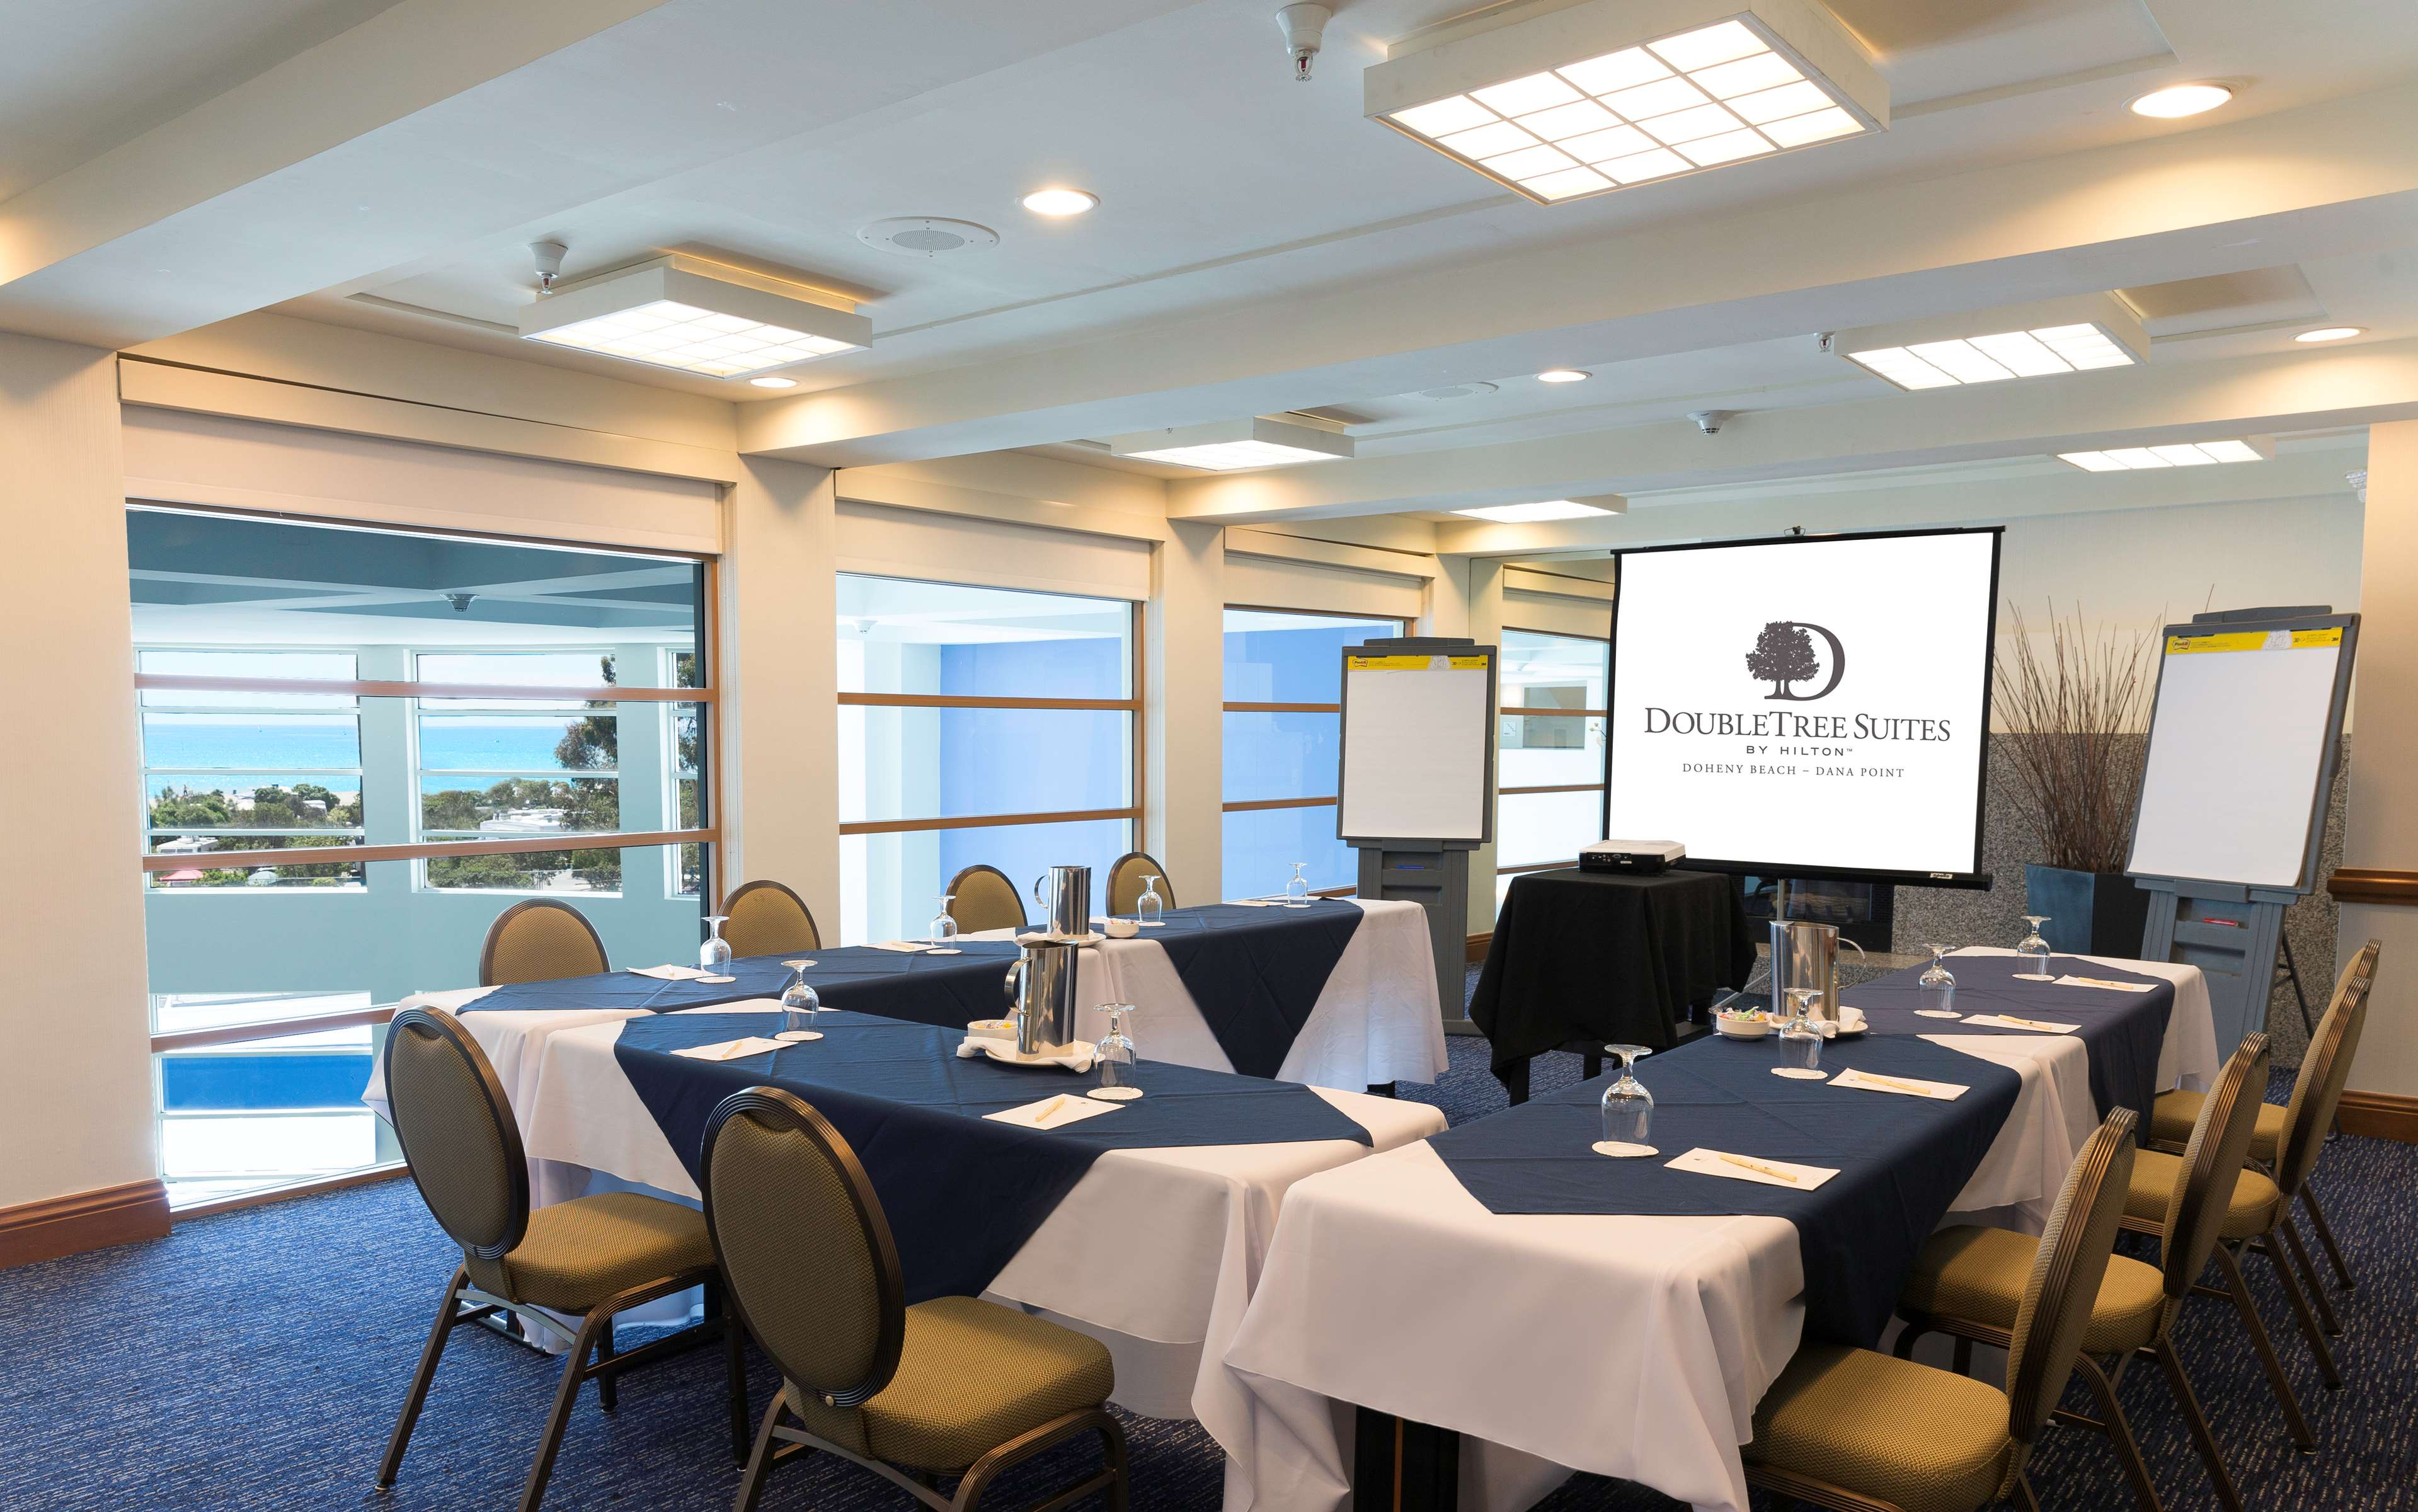 DoubleTree Suites by Hilton Hotel Doheny Beach - Dana Point image 27